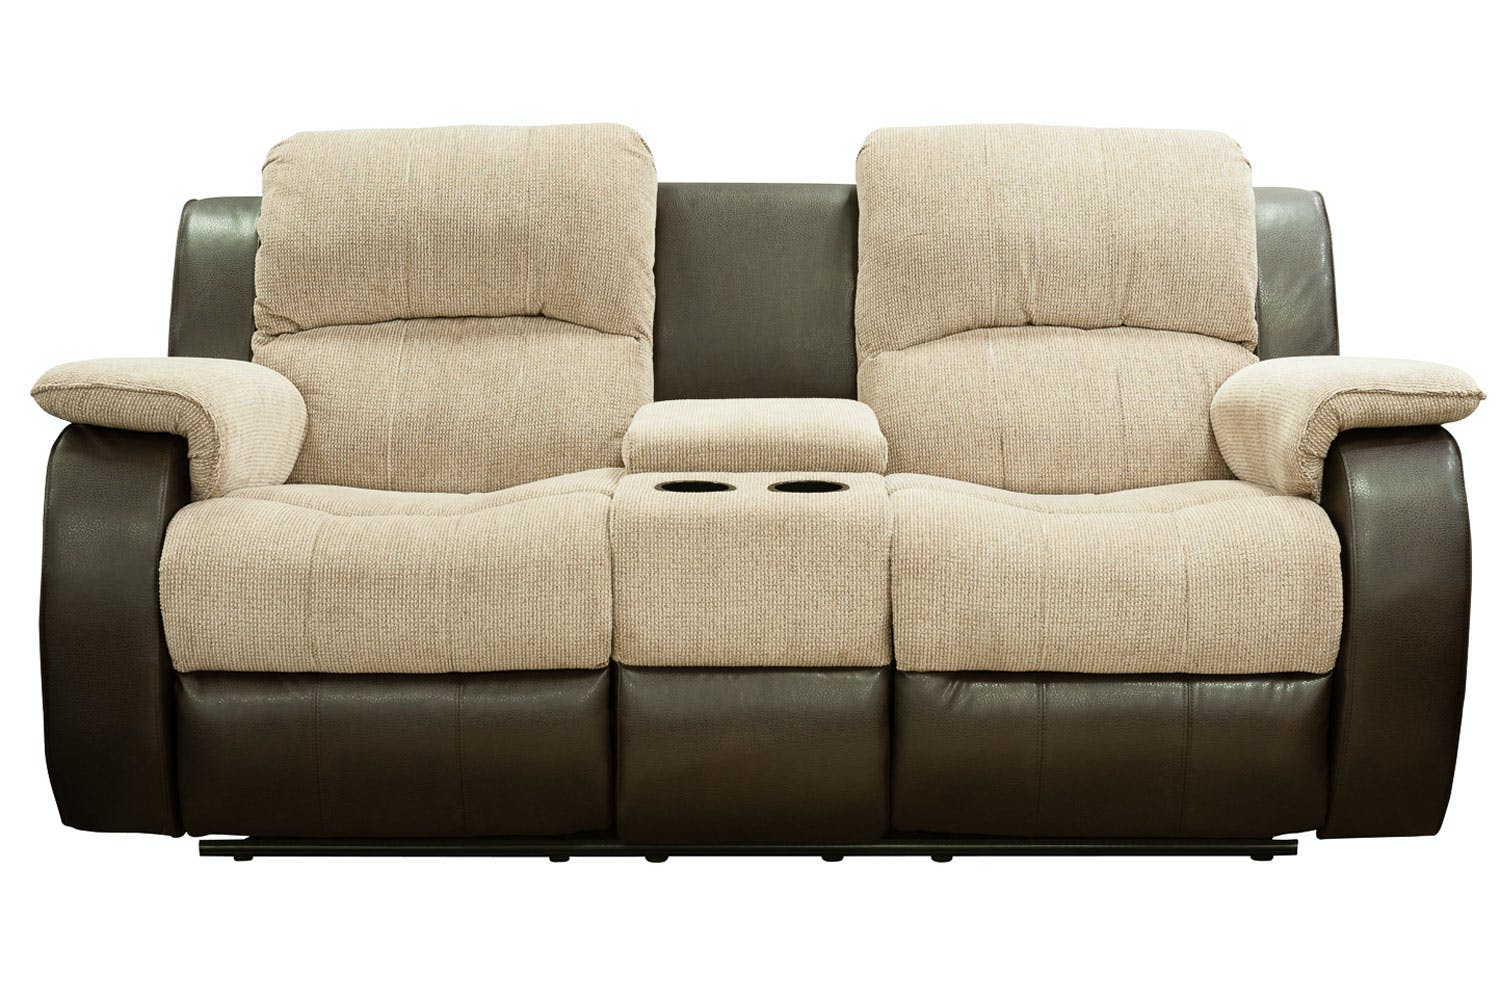 Recliner sofa bed reclining sofa bed supplieranufacturers for Sofa bed ireland